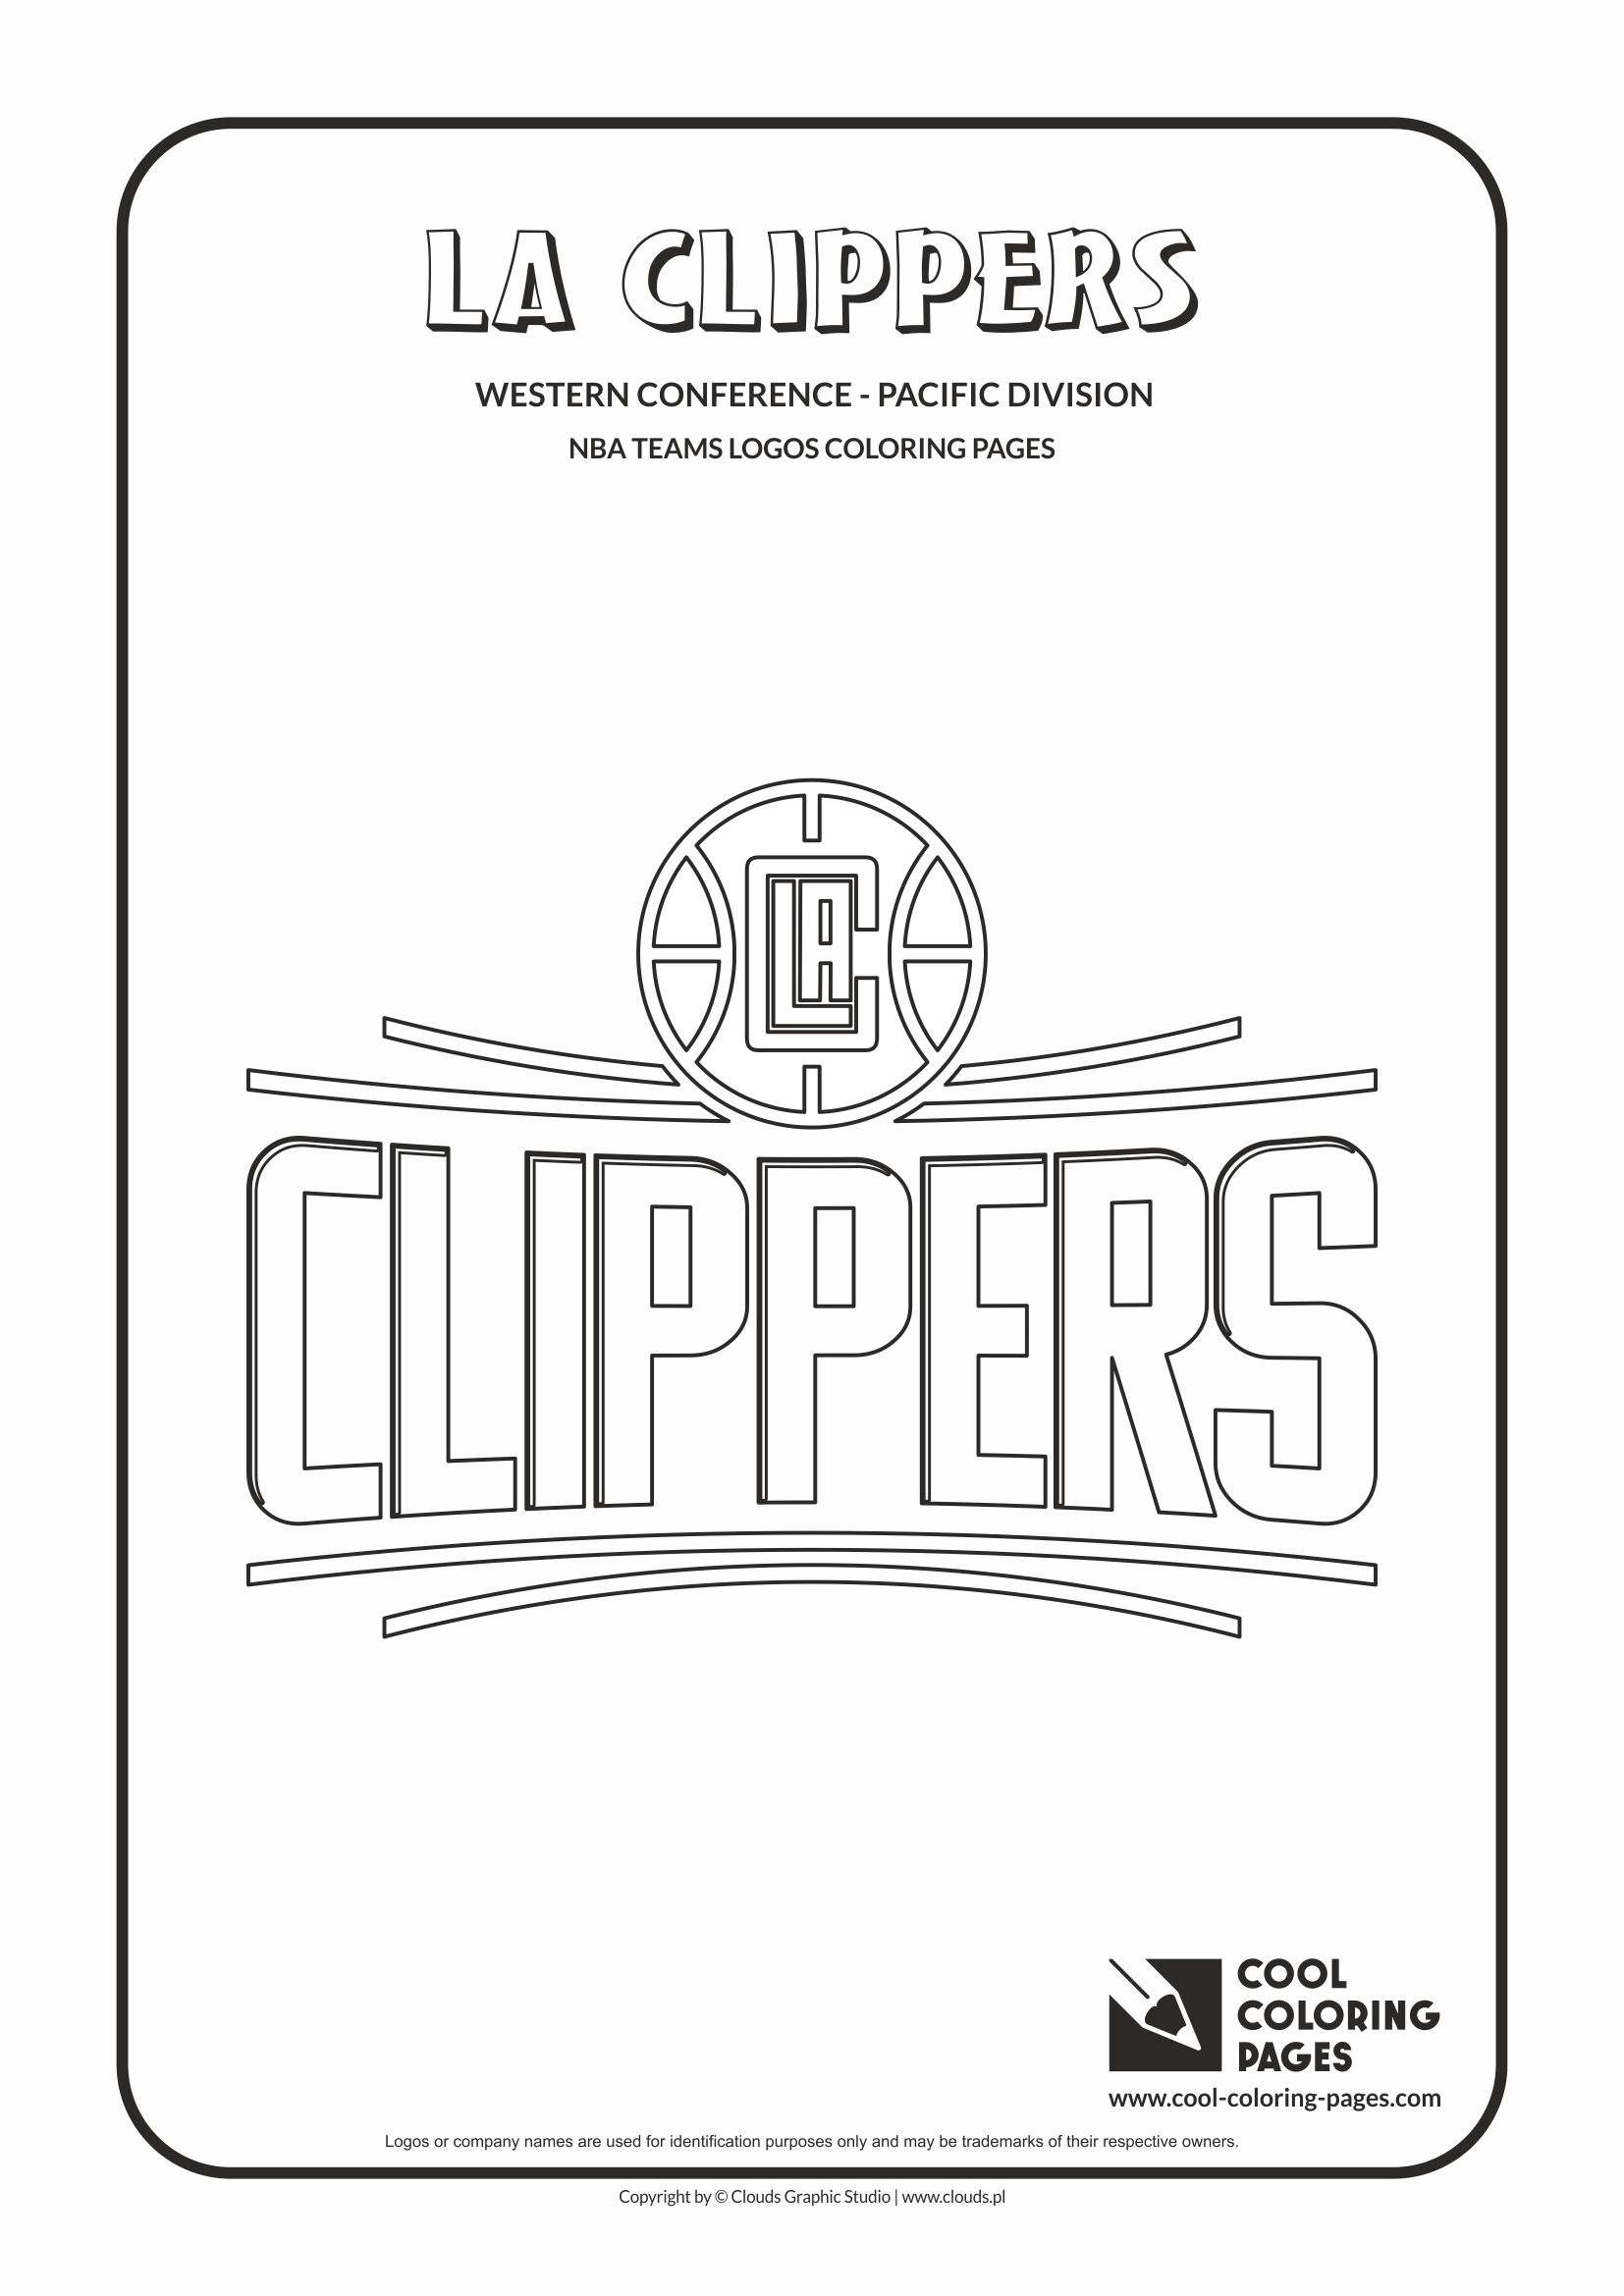 la clippers u2013 nba basketball teams logos coloring pages cool